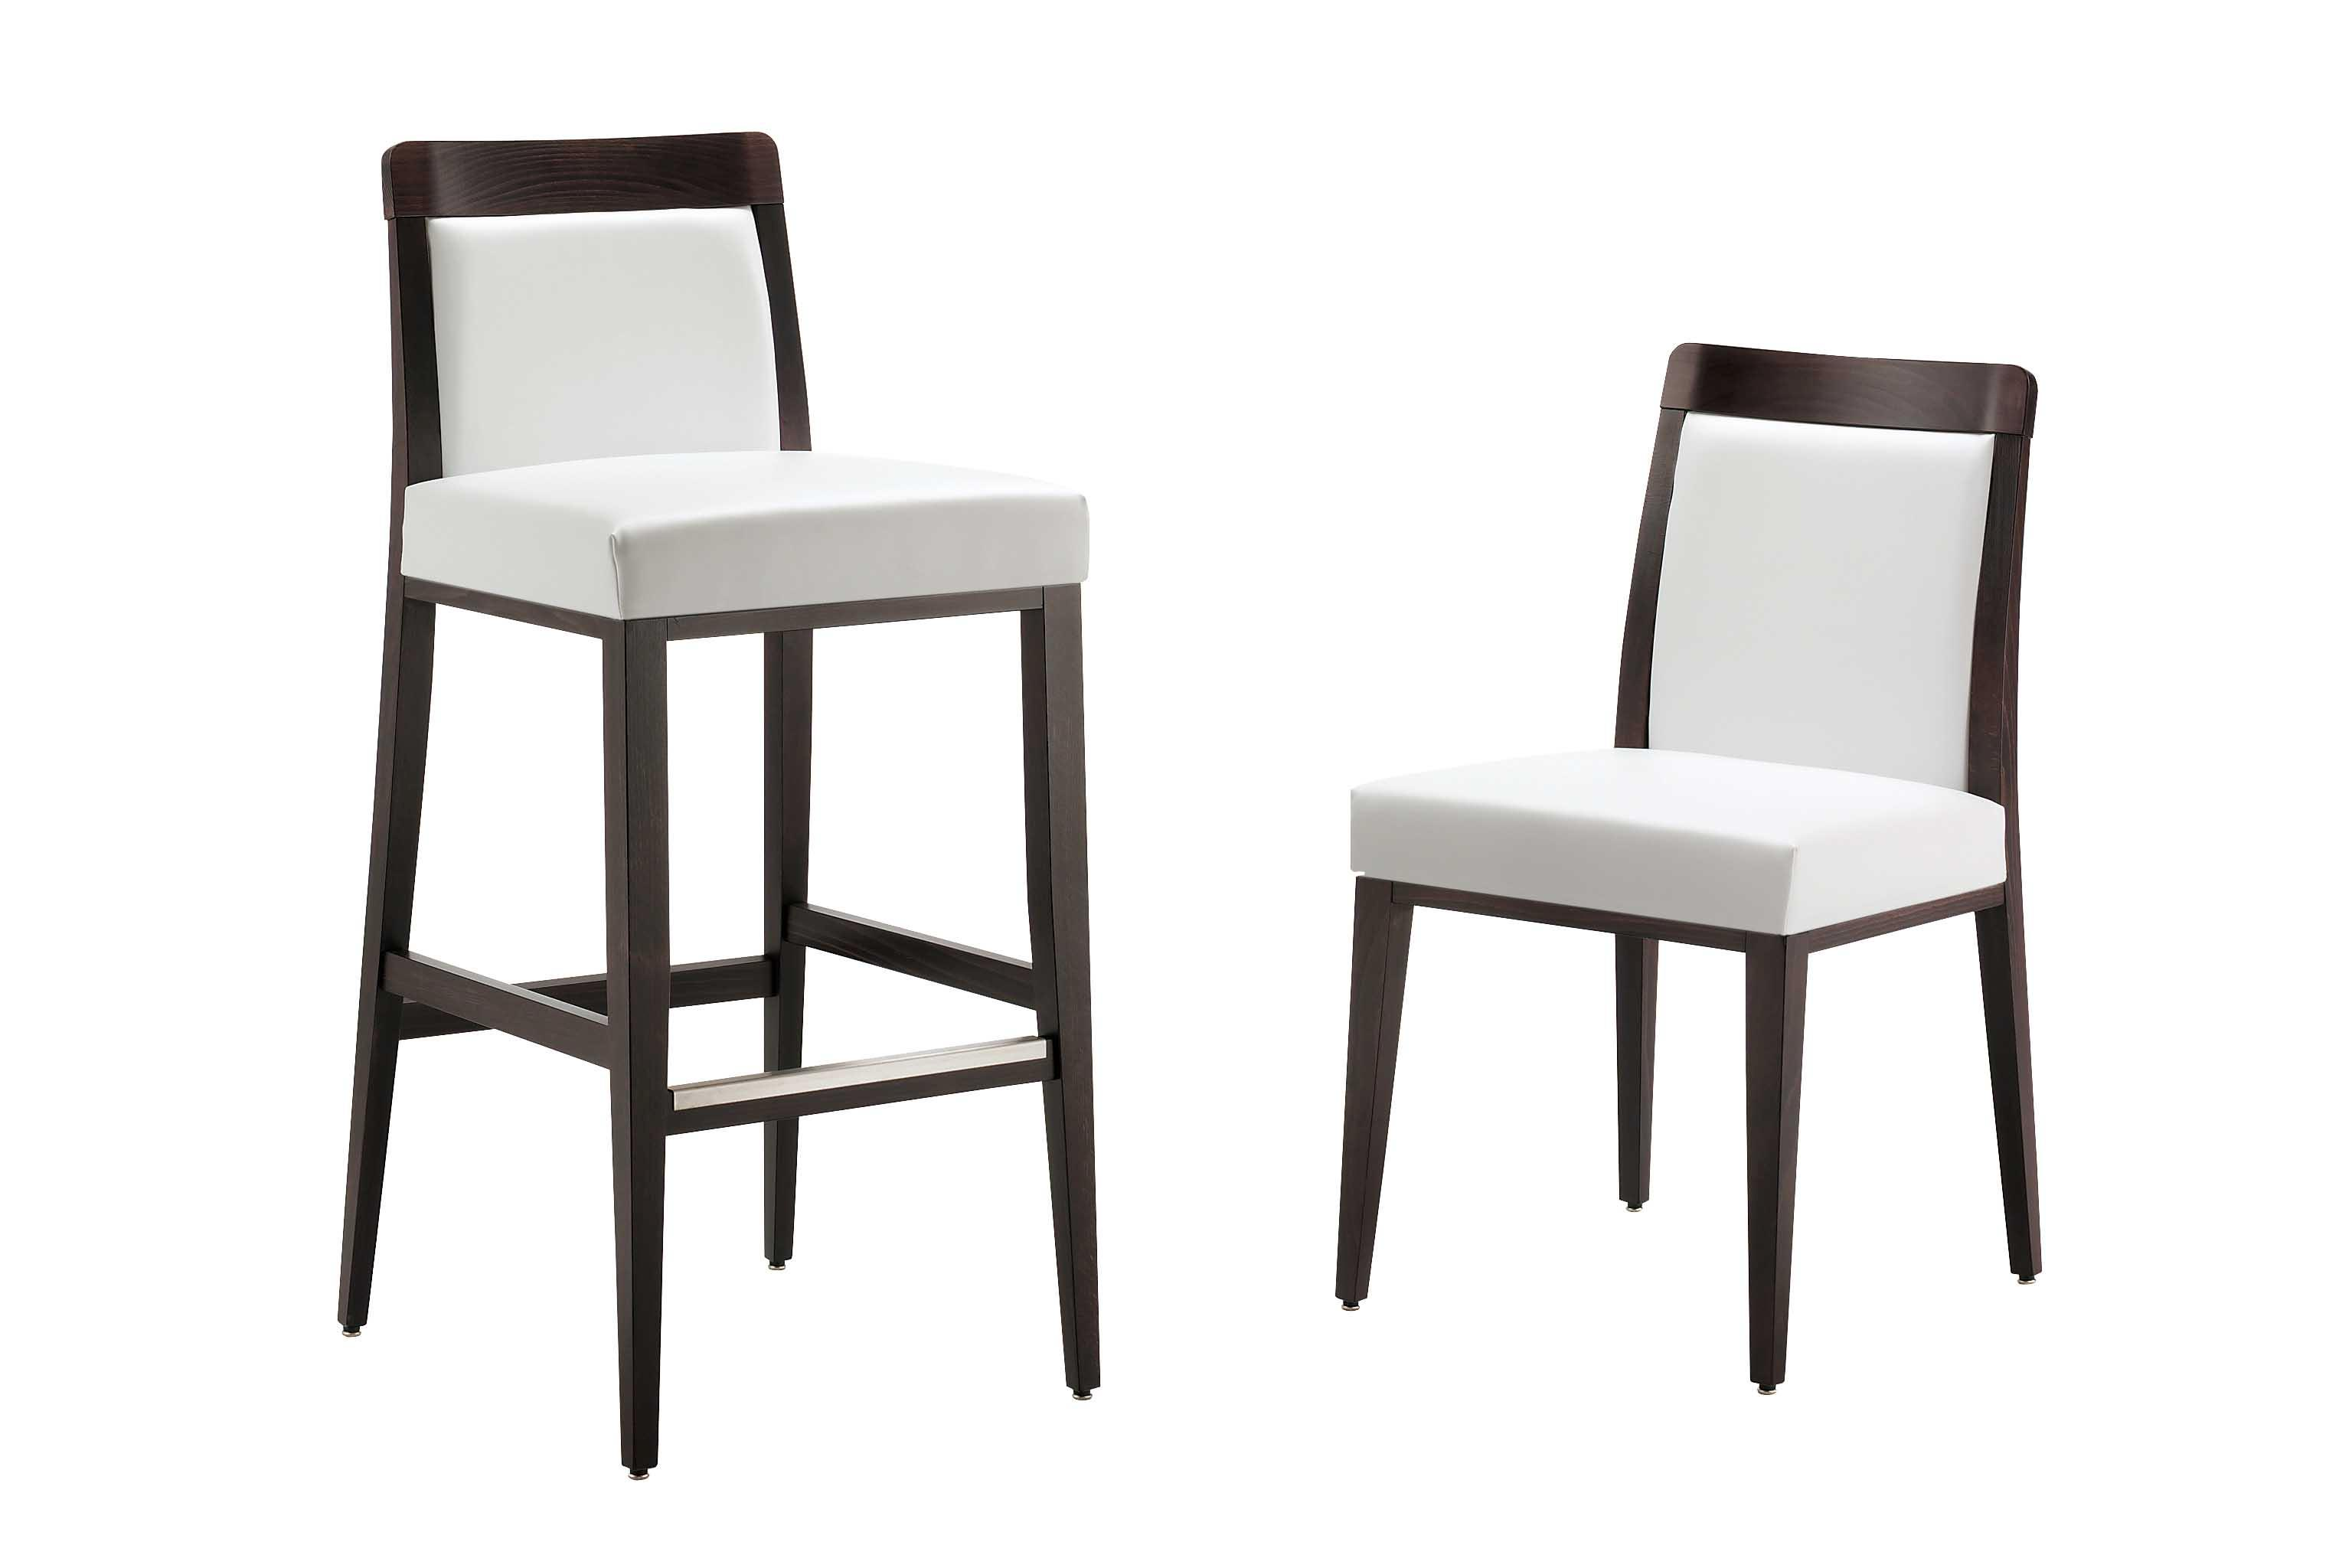 Restaurant chairs contemporary 4 0 10000 0 pieces for Restaurant furniture